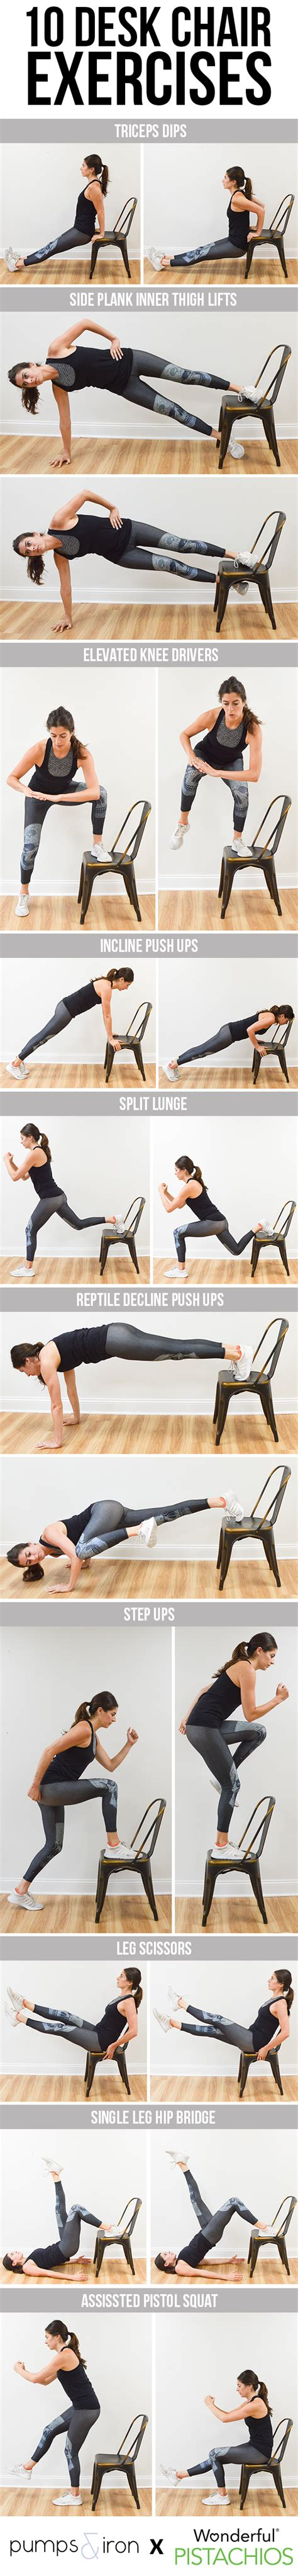 exercise desk chair 10 exercises you can do with a desk chair pumps iron